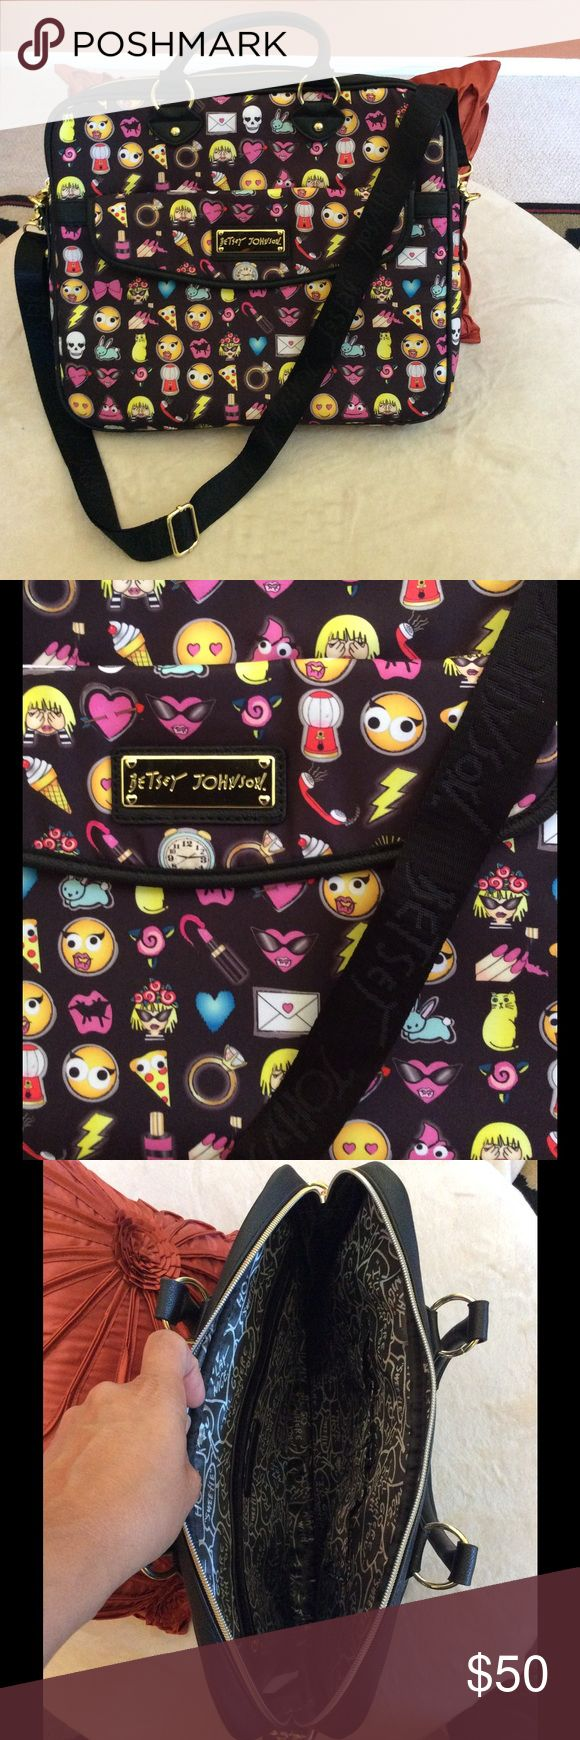 Betsey Johnson Laptop Travel Bag Black/Multi colors, emojis laptop travel case/bag. Outside snap button pocket, inside cell phone pockets, and zipper pocket. Padded for laptop protection. NWOT. My laptop is 15in wide, 17.5in diagonal and fits in this bag. Price is firm at this time, unless bundled Betsey Johnson Bags Laptop Bags